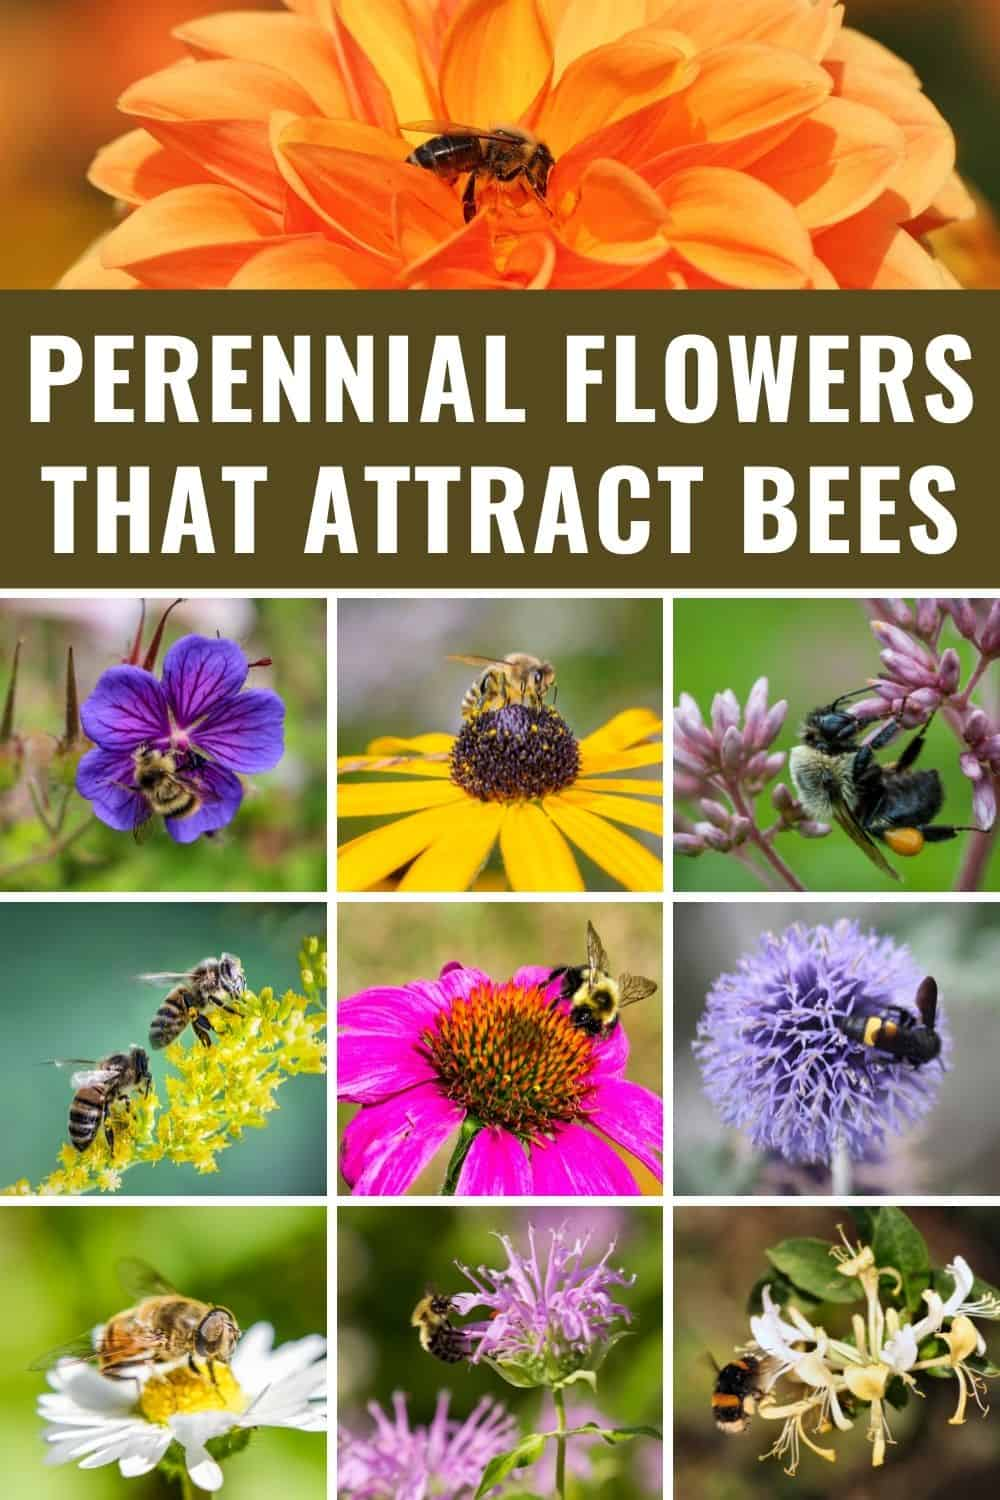 Perennial flowers that attract bees